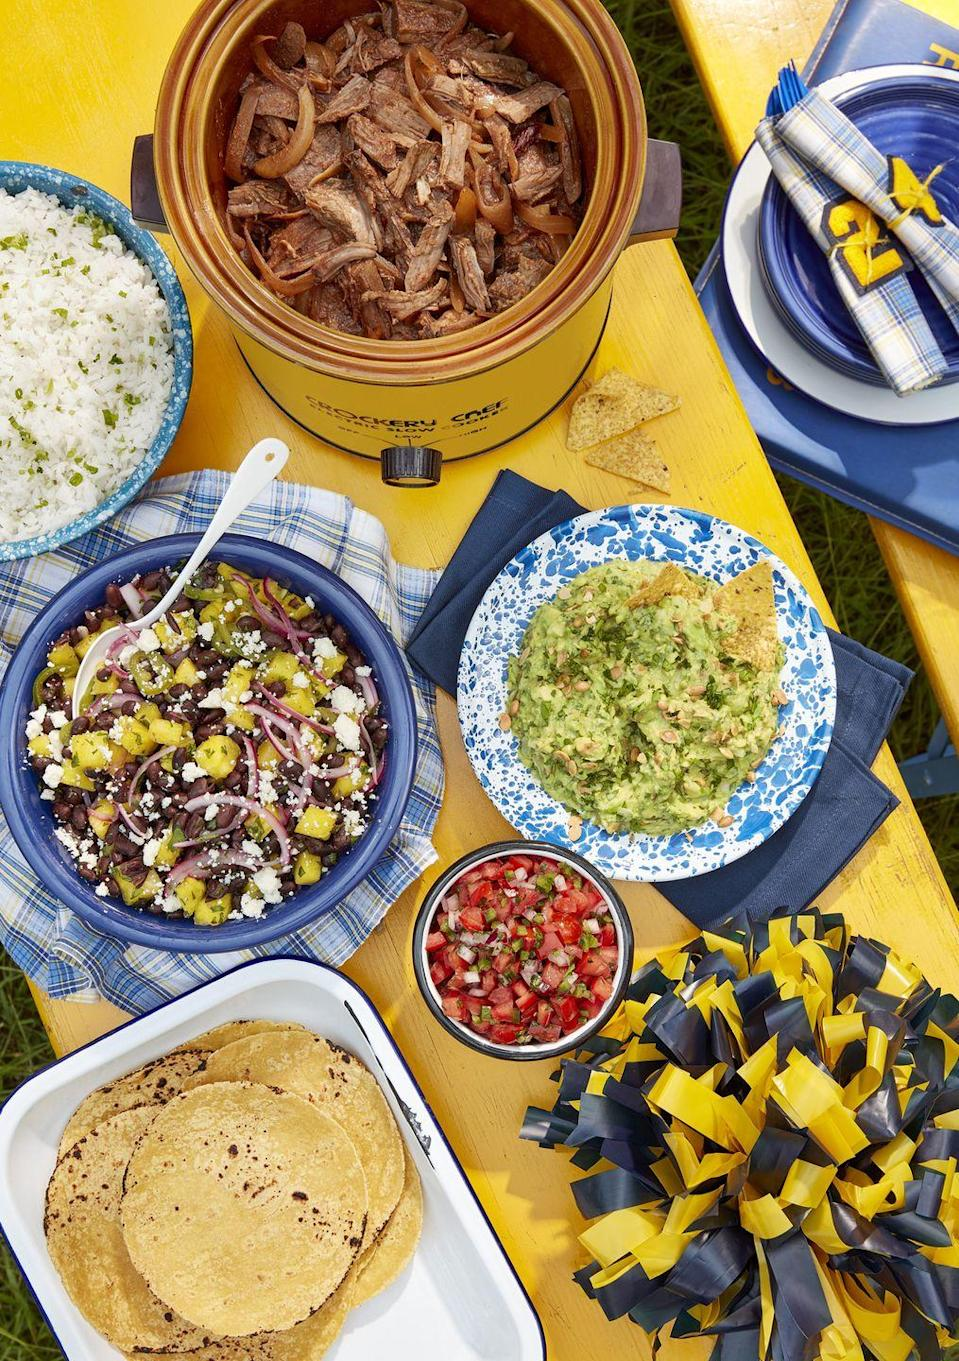 "<p>Tacos are a game-day classic. The slow cooker keeps the meat hot and tender, so you can help yourself all day long. While the meat, salsa, sour cream, and cheese are all diet-friendly, keep it truly keto with <a href=""https://www.amazon.com/Julian-Bakery-Gluten-Free-Grain-Free-Individual/dp/B085FZHLK8/?tag=syn-yahoo-20&ascsubtag=%5Bartid%7C10050.g.35131635%5Bsrc%7Cyahoo-us"" rel=""nofollow noopener"" target=""_blank"" data-ylk=""slk:low-carb tortillas"" class=""link rapid-noclick-resp"">low-carb tortillas</a>.</p><p><strong><a href=""https://www.countryliving.com/food-drinks/a24440705/smoky-slow-cooker-beef-tacos/"" rel=""nofollow noopener"" target=""_blank"" data-ylk=""slk:Get the recipe"" class=""link rapid-noclick-resp"">Get the recipe</a>.</strong></p><p><strong><a class=""link rapid-noclick-resp"" href=""https://www.amazon.com/Crock-Pot-SCCPVL610-S-6-Quart-Programmable-Stainless/dp/B004P2NG0K/?tag=syn-yahoo-20&ascsubtag=%5Bartid%7C10050.g.35131635%5Bsrc%7Cyahoo-us"" rel=""nofollow noopener"" target=""_blank"" data-ylk=""slk:SHOP SLOW COOKERS"">SHOP SLOW COOKERS</a><br></strong></p>"